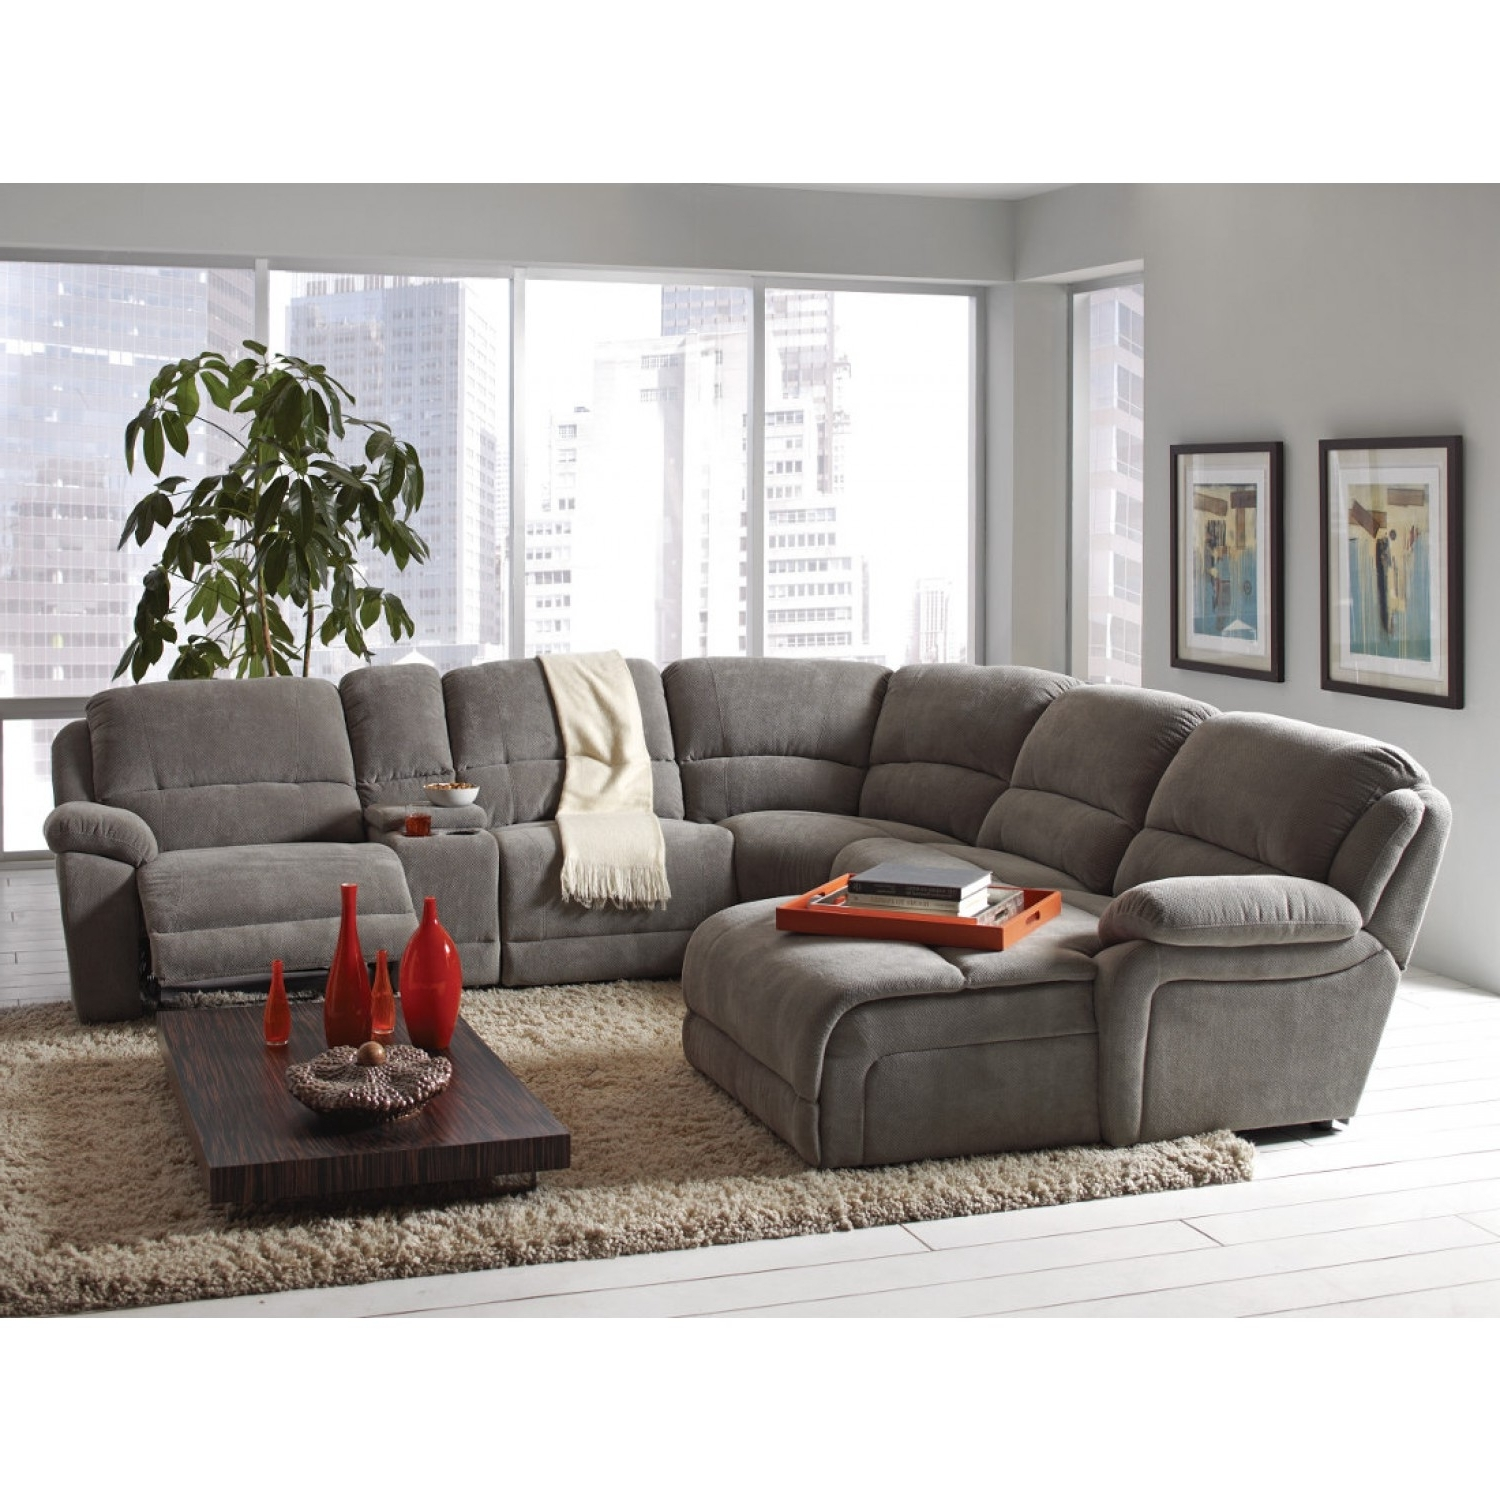 Coaster Mackenzie Silver 6 Piece Reclining Sectional Sofa With Regarding Recent Sectional Sofas With Cup Holders (View 12 of 15)